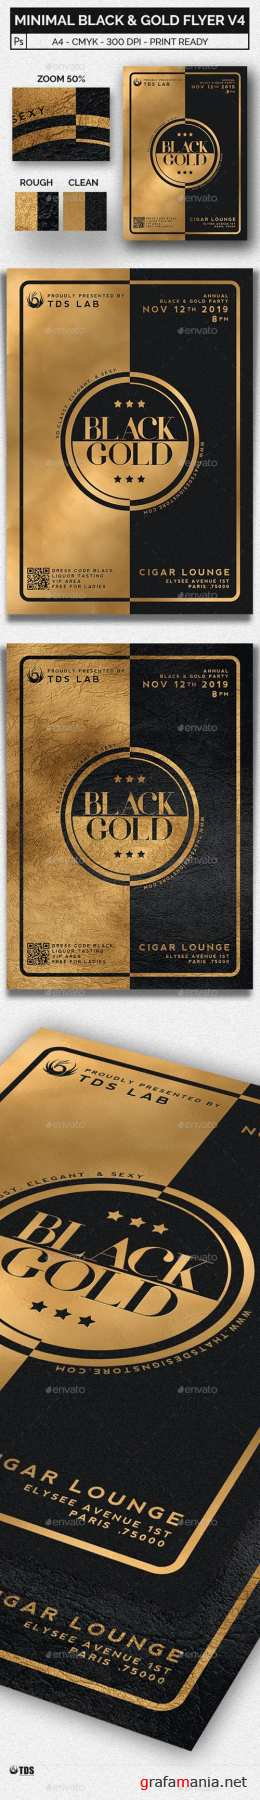 Minimal Black and Gold Flyer Template V4 20465471